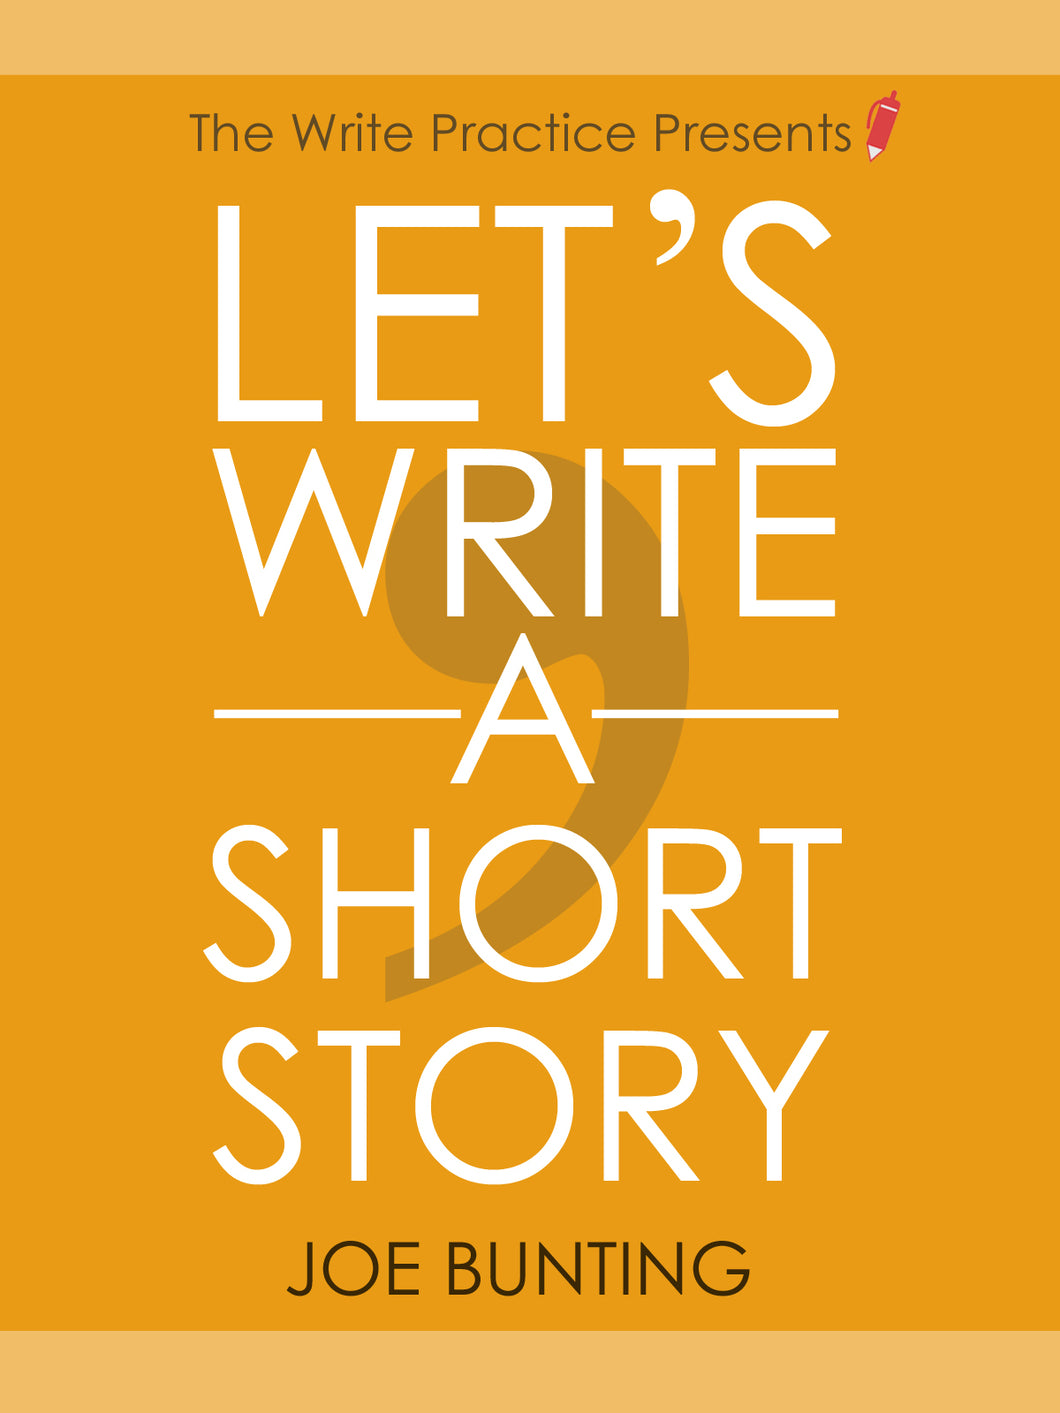 Let's Write a Short Story: How to Write and Publish a Short Story